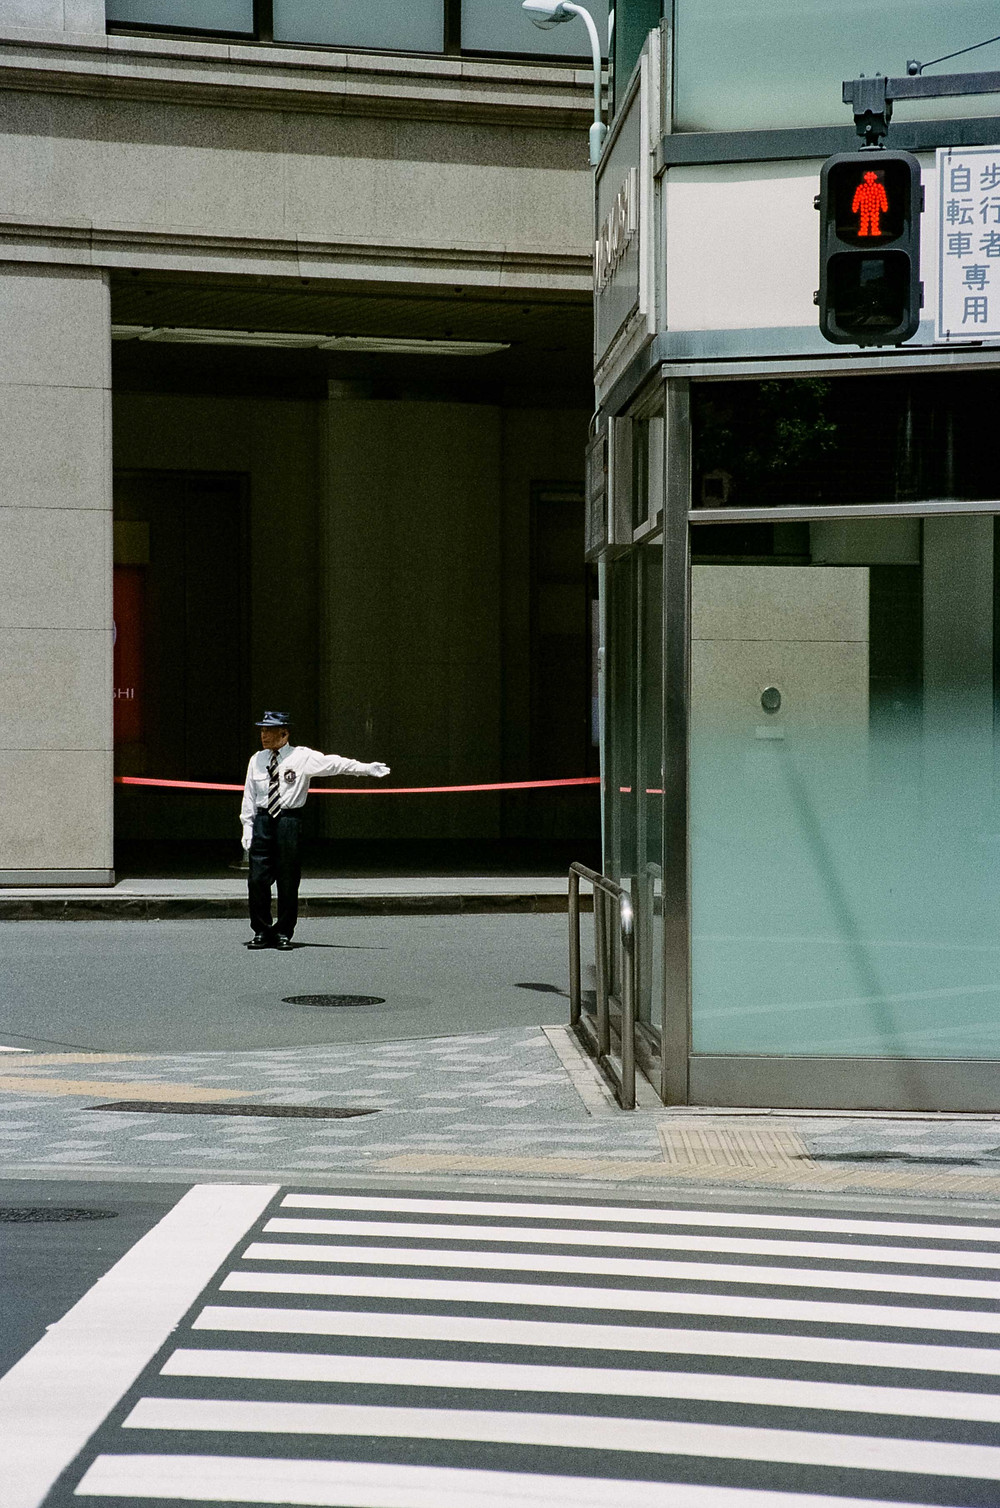 Film Photography: Tokyo street crossing, a security guard has his left hand out directing traffic